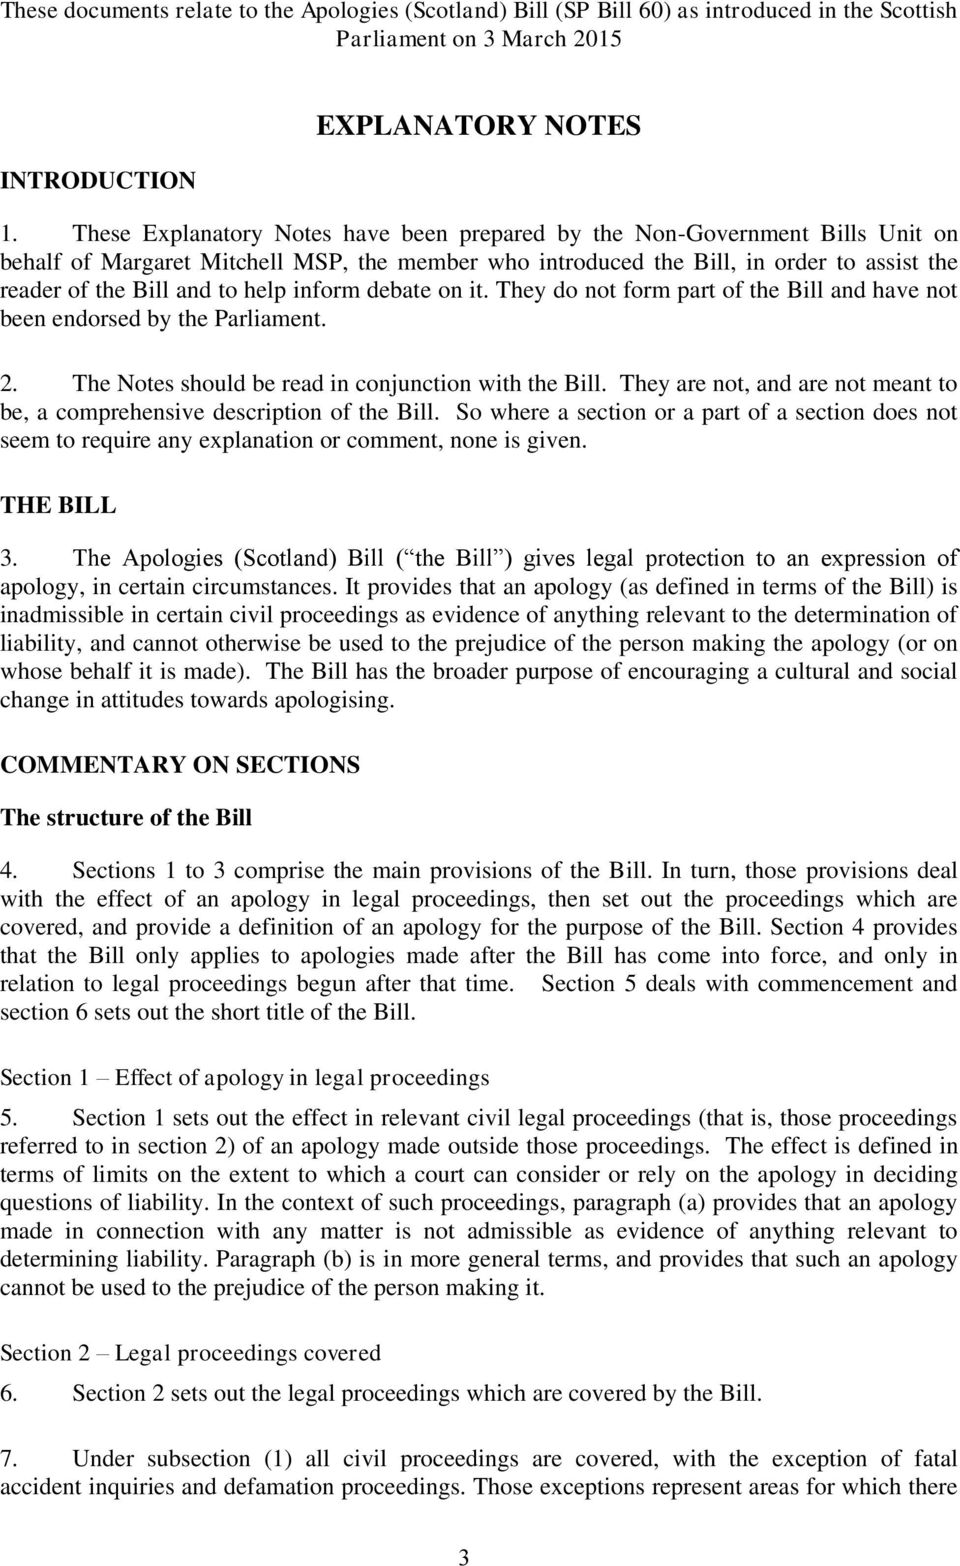 help inform debate on it. They do not form part of the Bill and have not been endorsed by the Parliament. 2. The Notes should be read in conjunction with the Bill.